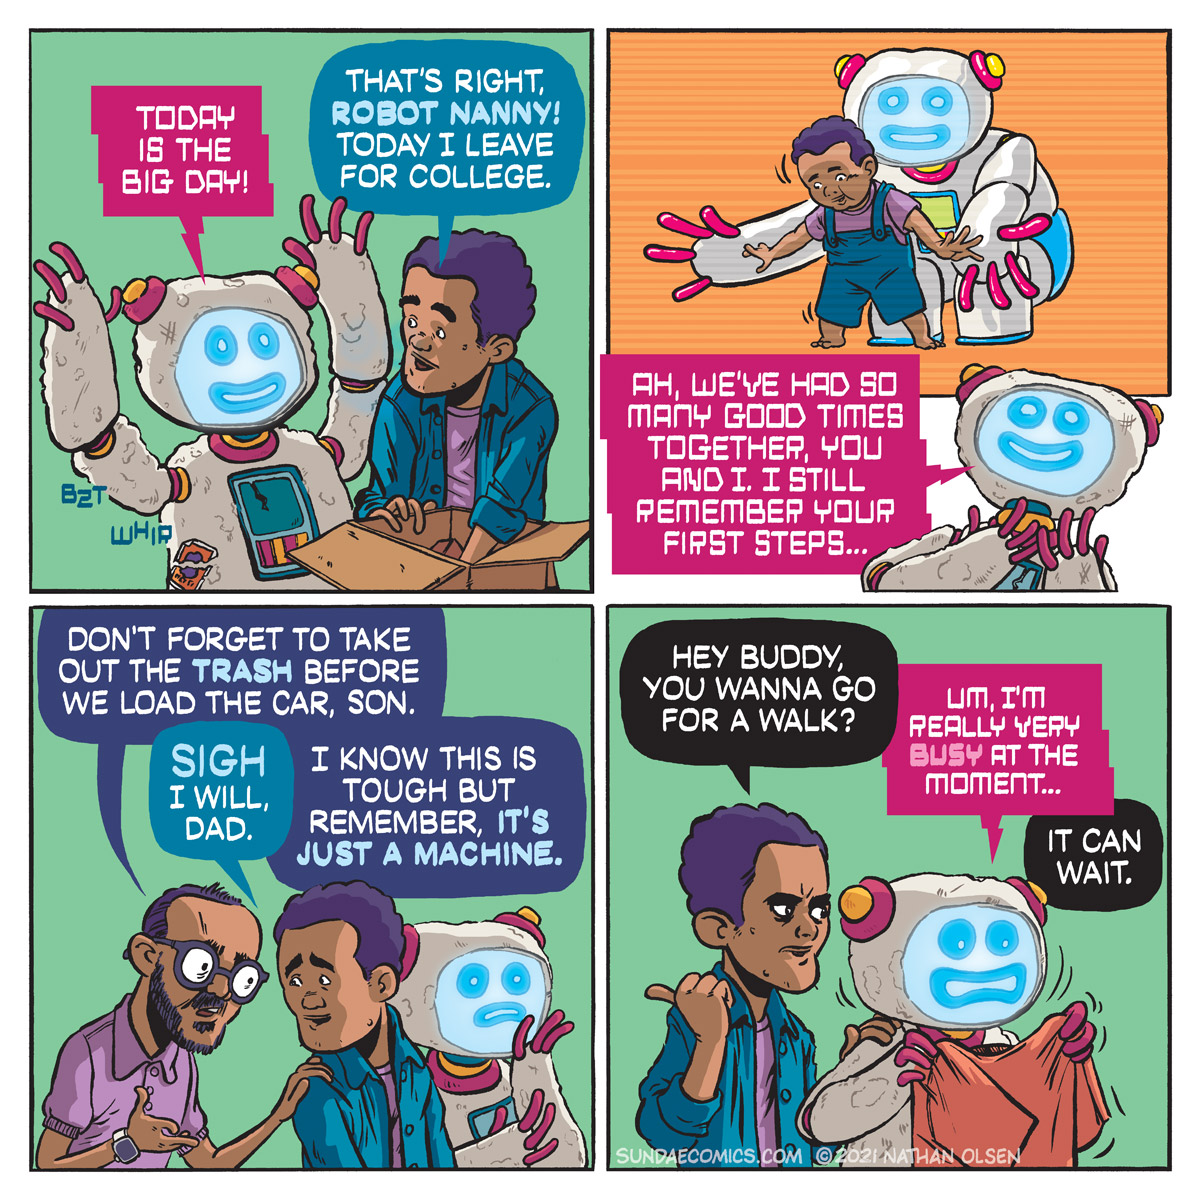 A webcomic about the real danger of machine learning. When throwing out an appliance feels like throwing out your best friend.